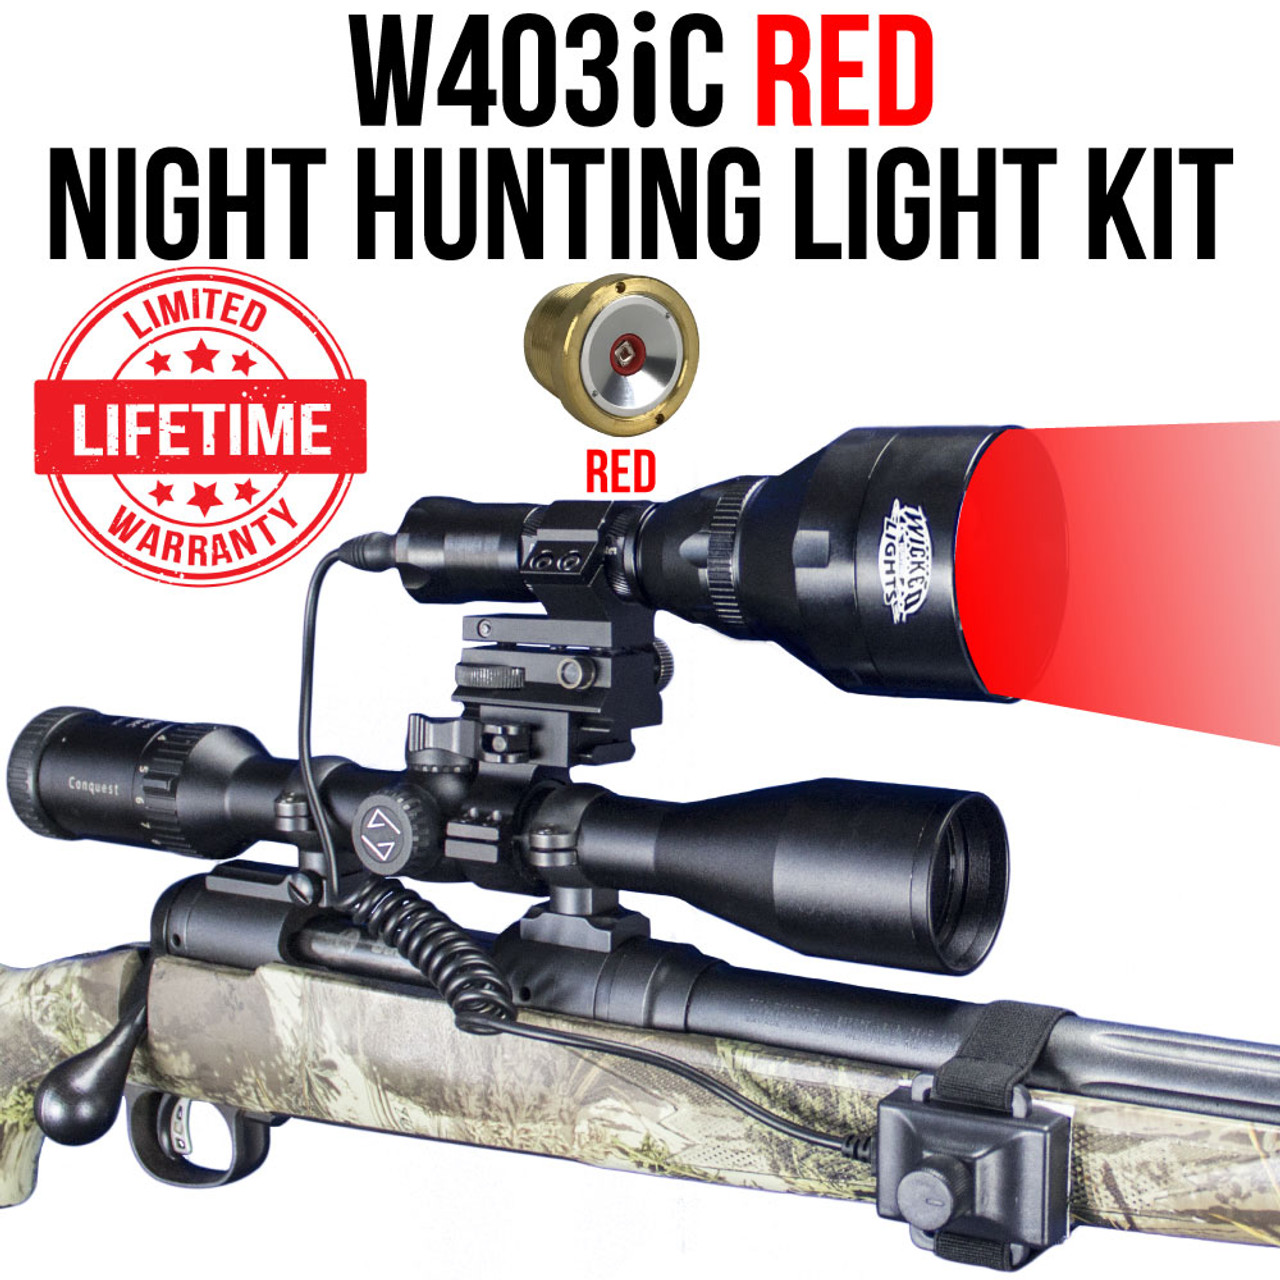 Wicked Lights W403ic Red Night Hunting Light Kit